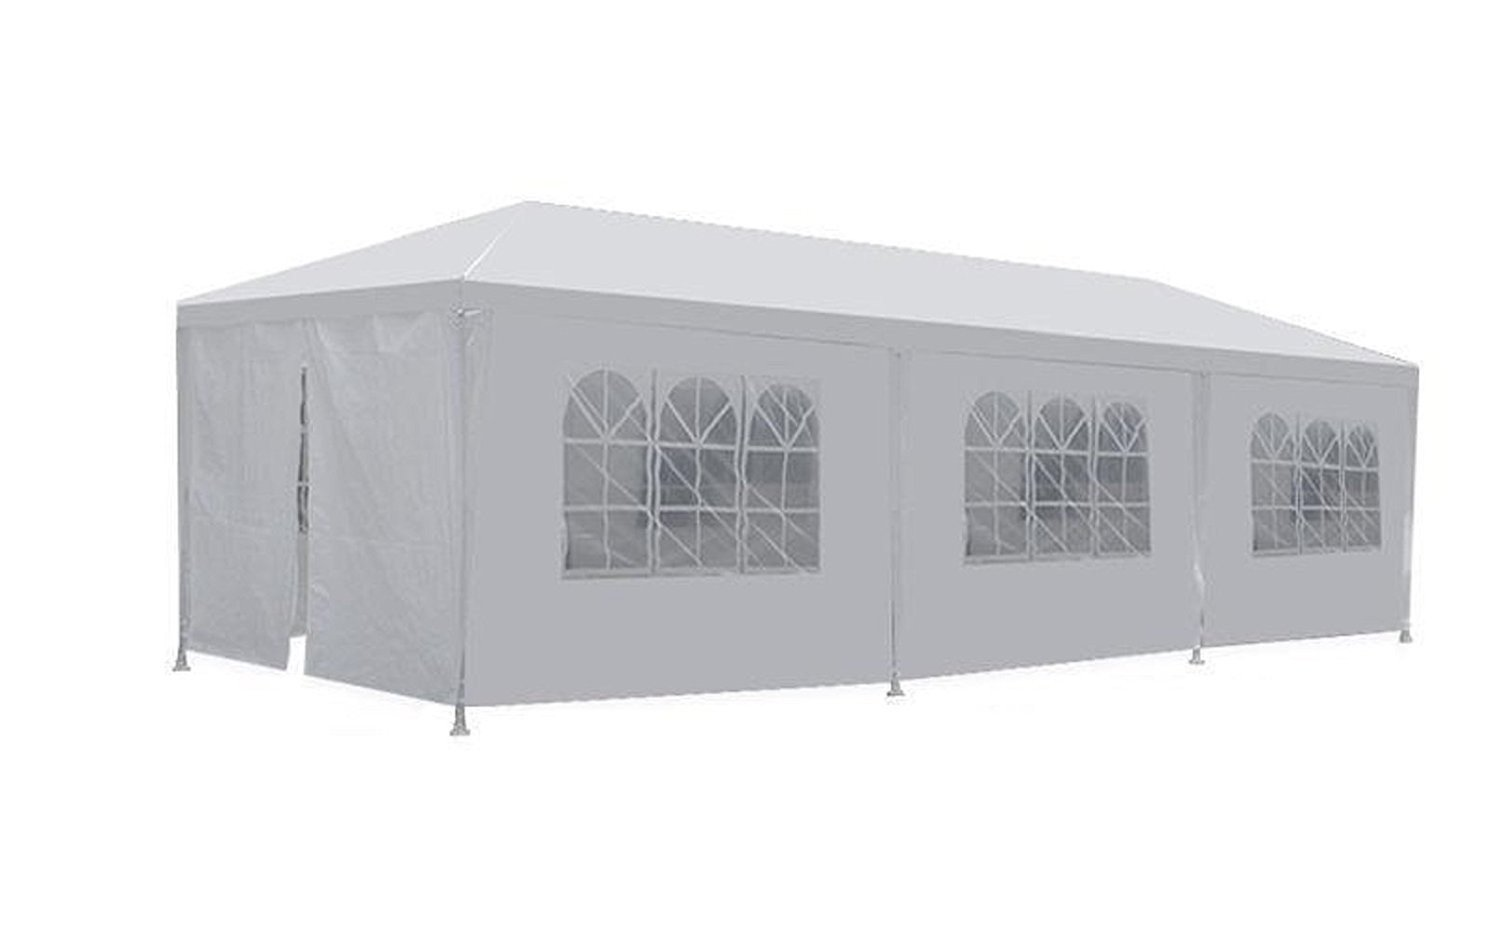 10'x30' White Outdoor Gazebo Canopy Party Wedding Tent 8 Sidewalls Removable Walls